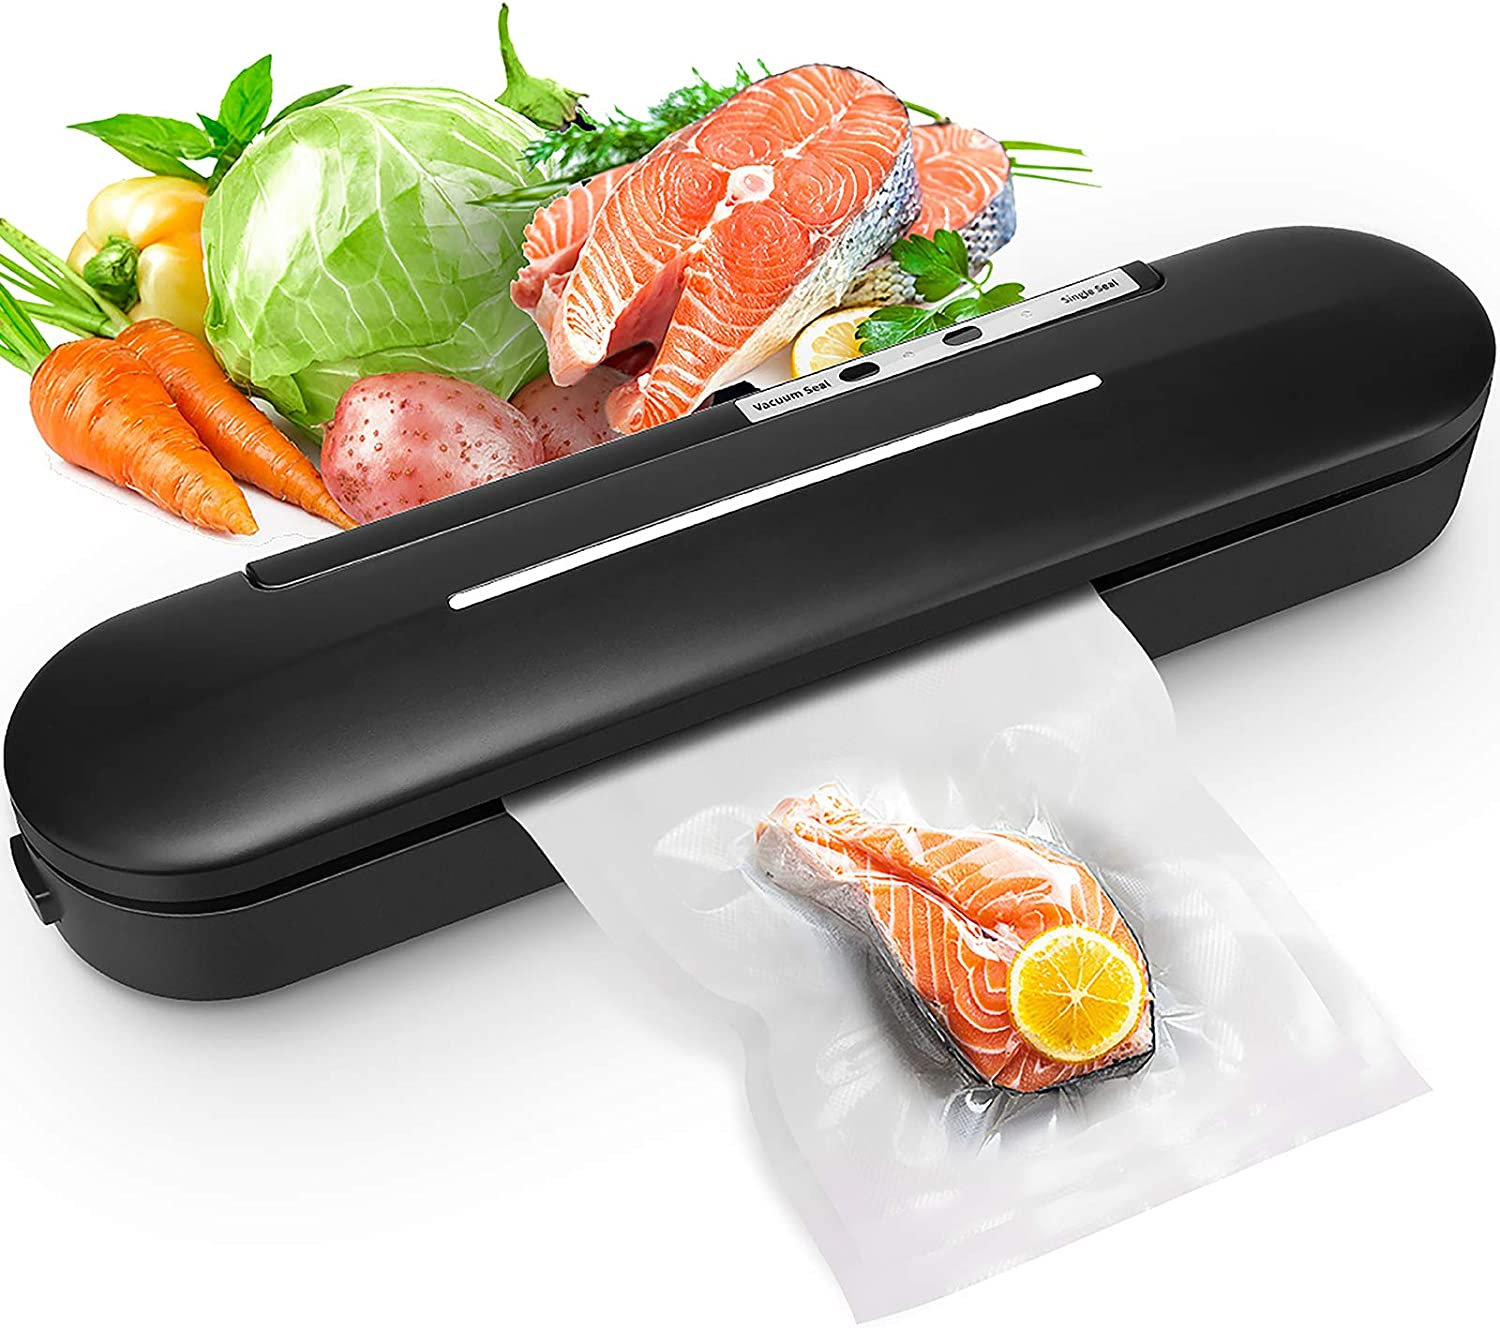 Vacuum Sealer, Premium Automatic Food Sealer Machine for Food Savers, Home Use, Automatic Vacuum Air Sealing System,Led Indicator Lights|Easy to Clean| Compact Design (Black)